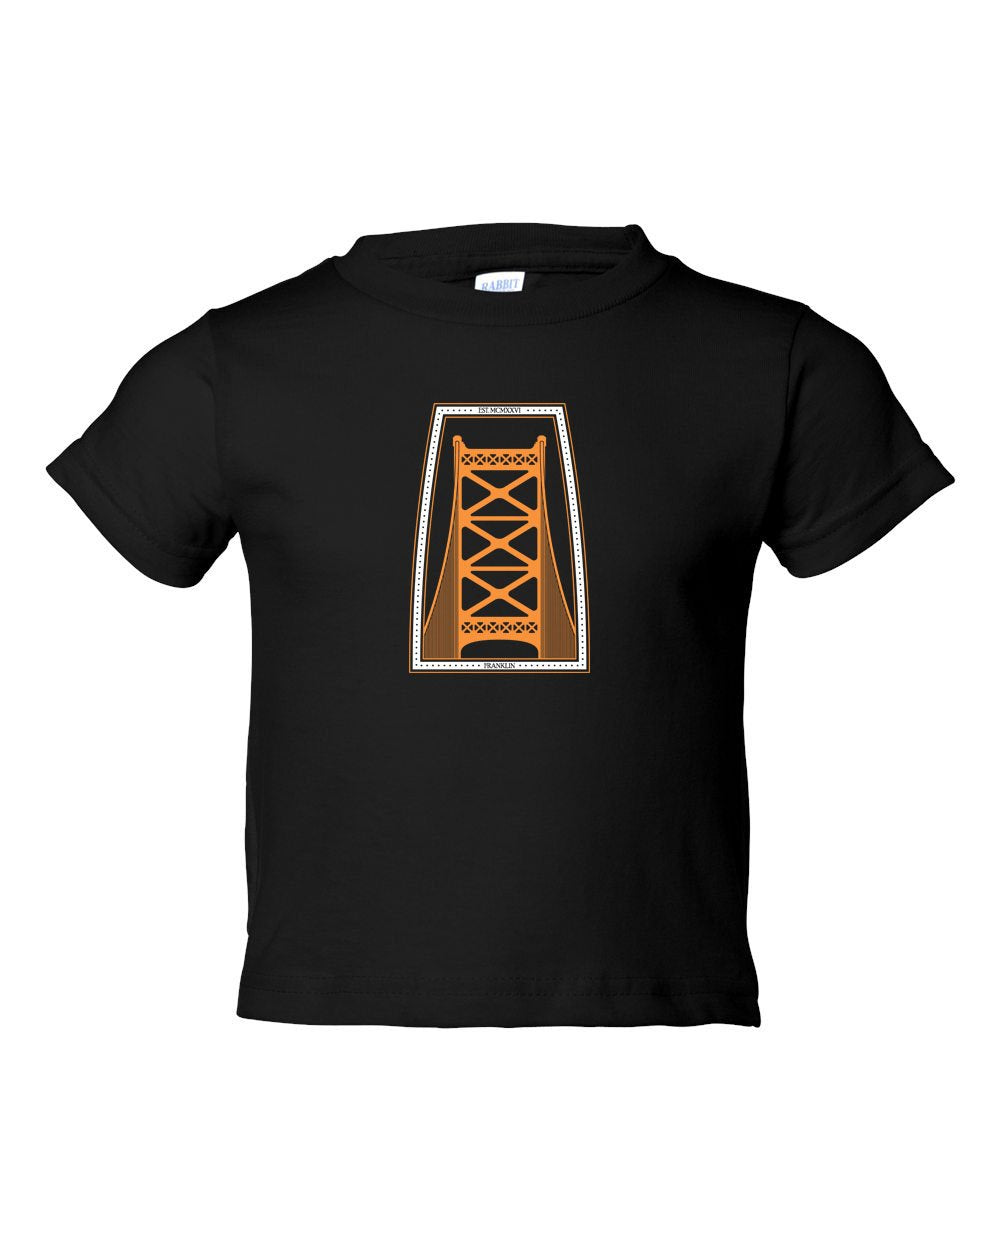 Ben Franklin Bridge Hockey TODDLER T-Shirt